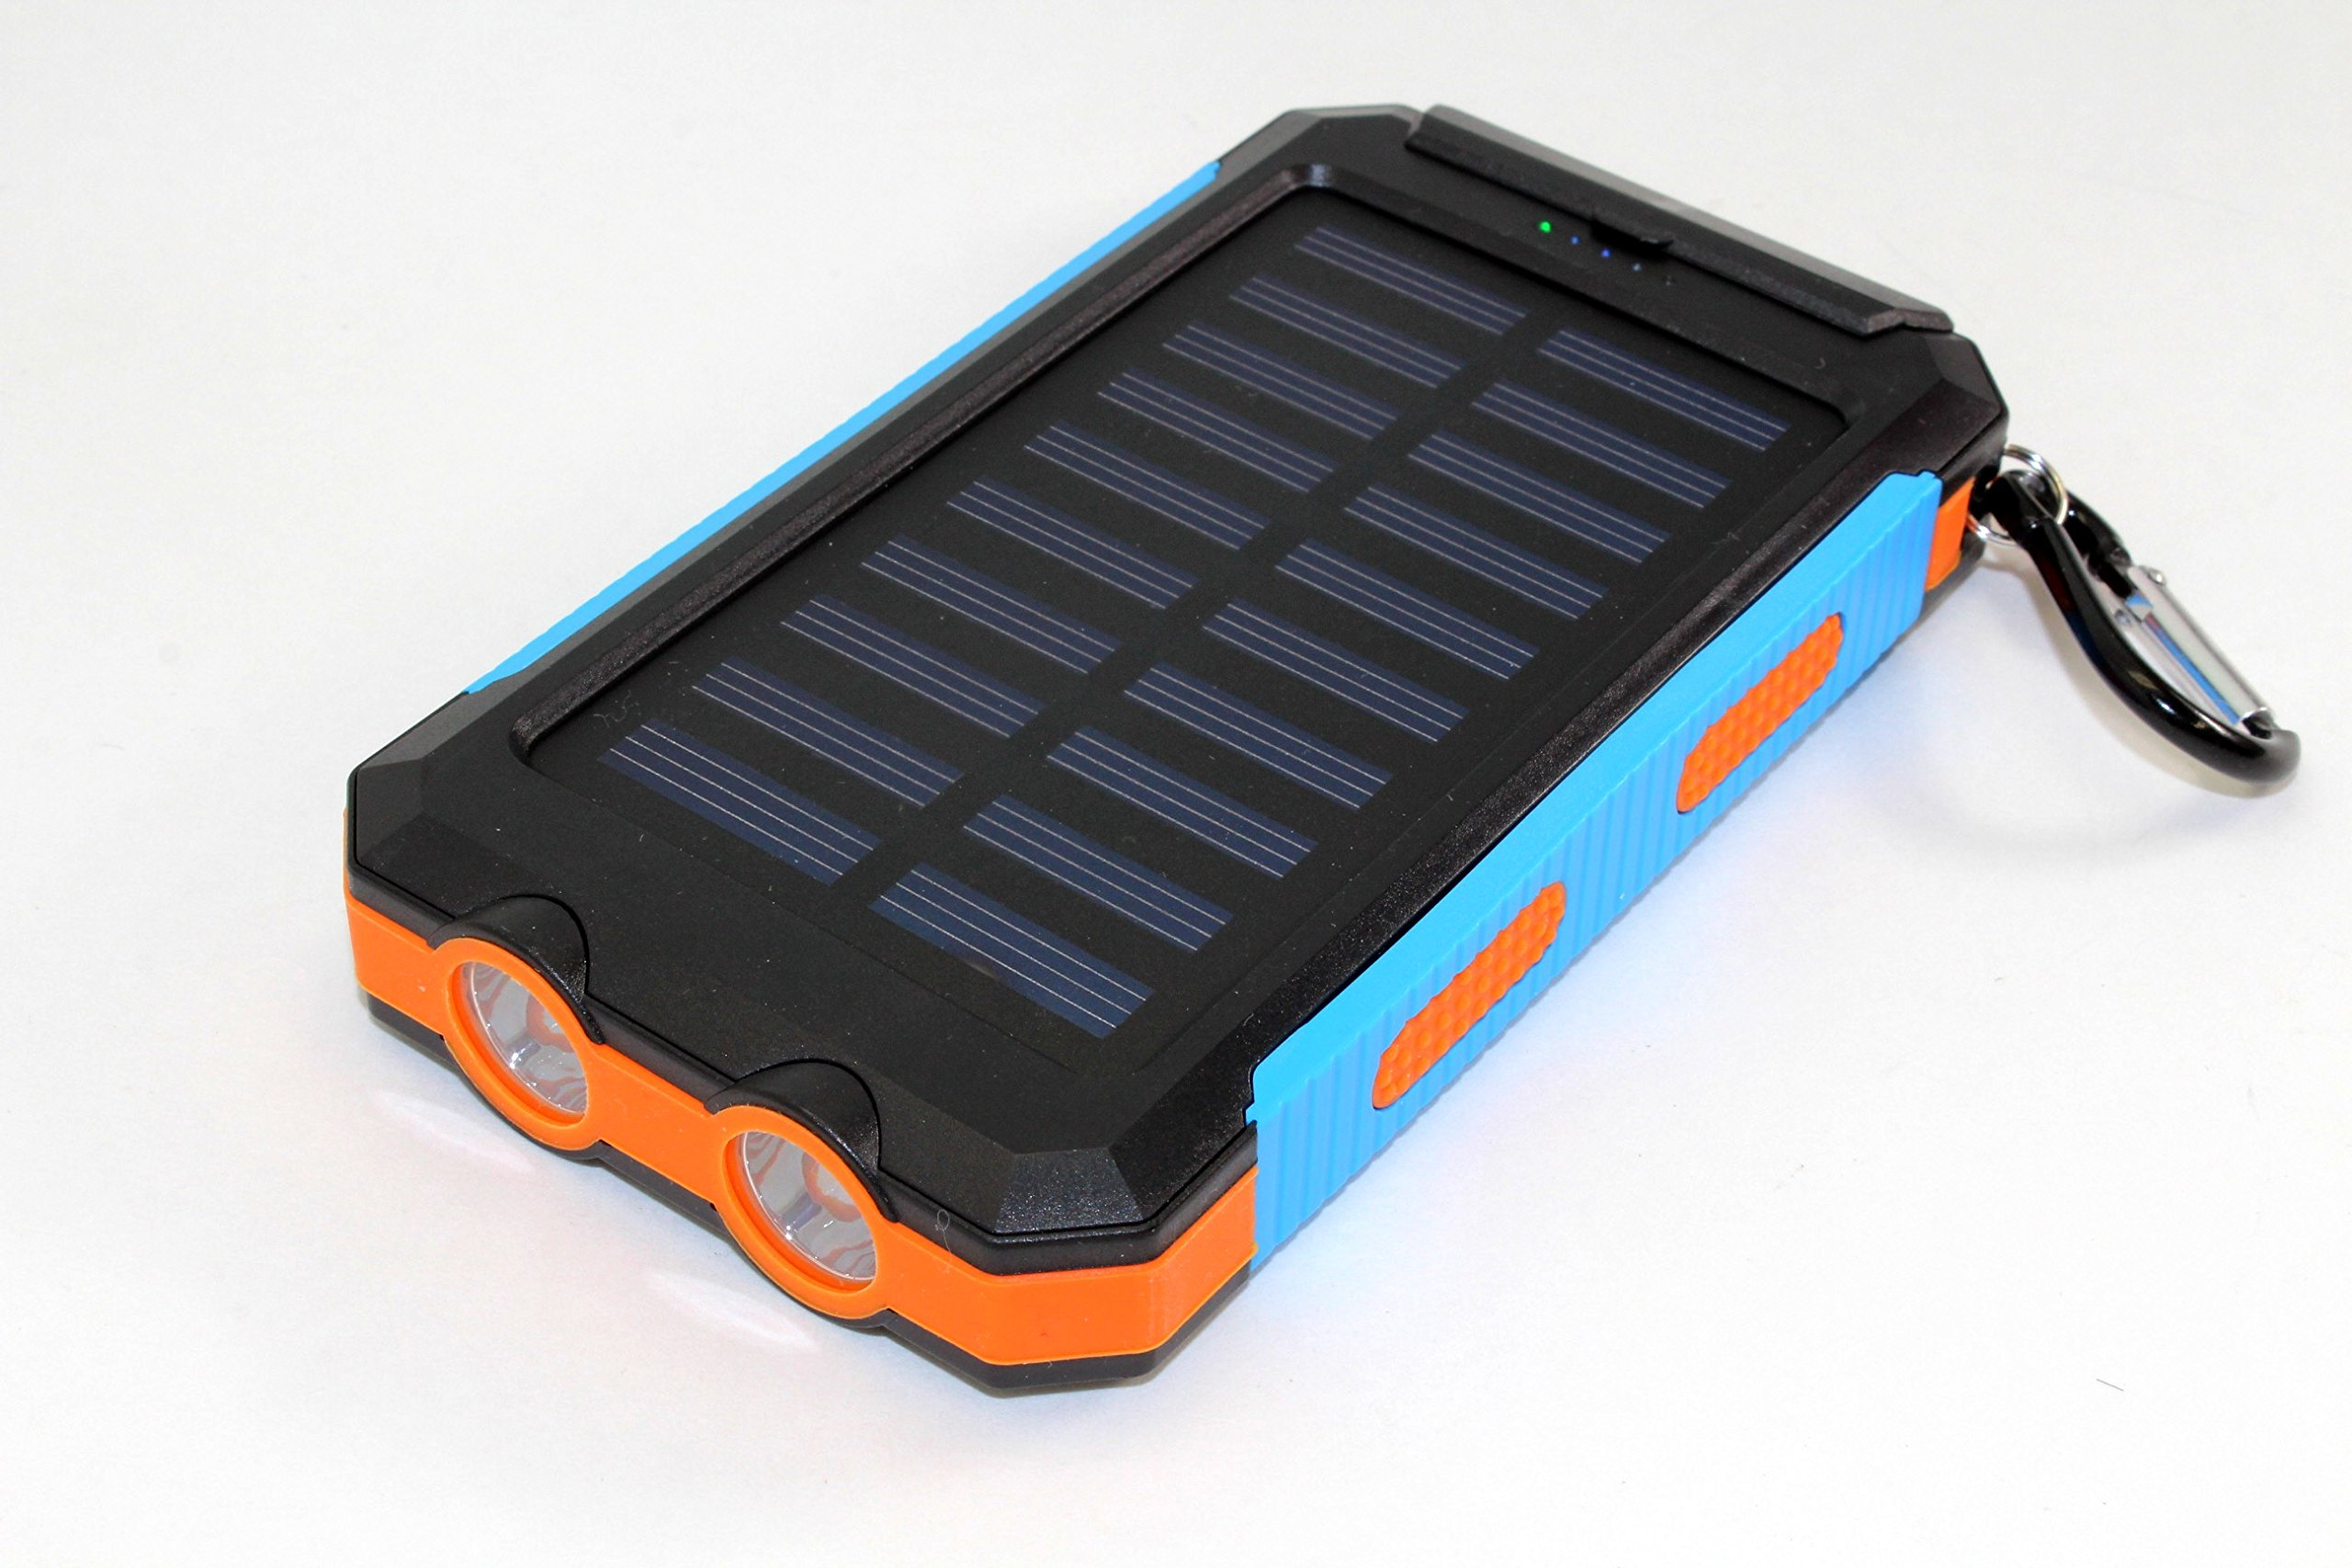 Solar Charger, Solar Power Bank 30000mAh External Backup Battery Pack Dual USB Solar Panel Charger with Flashlight Compass Portable for Emergency Outdoor Camping Travel (Black - Orange - Blue)